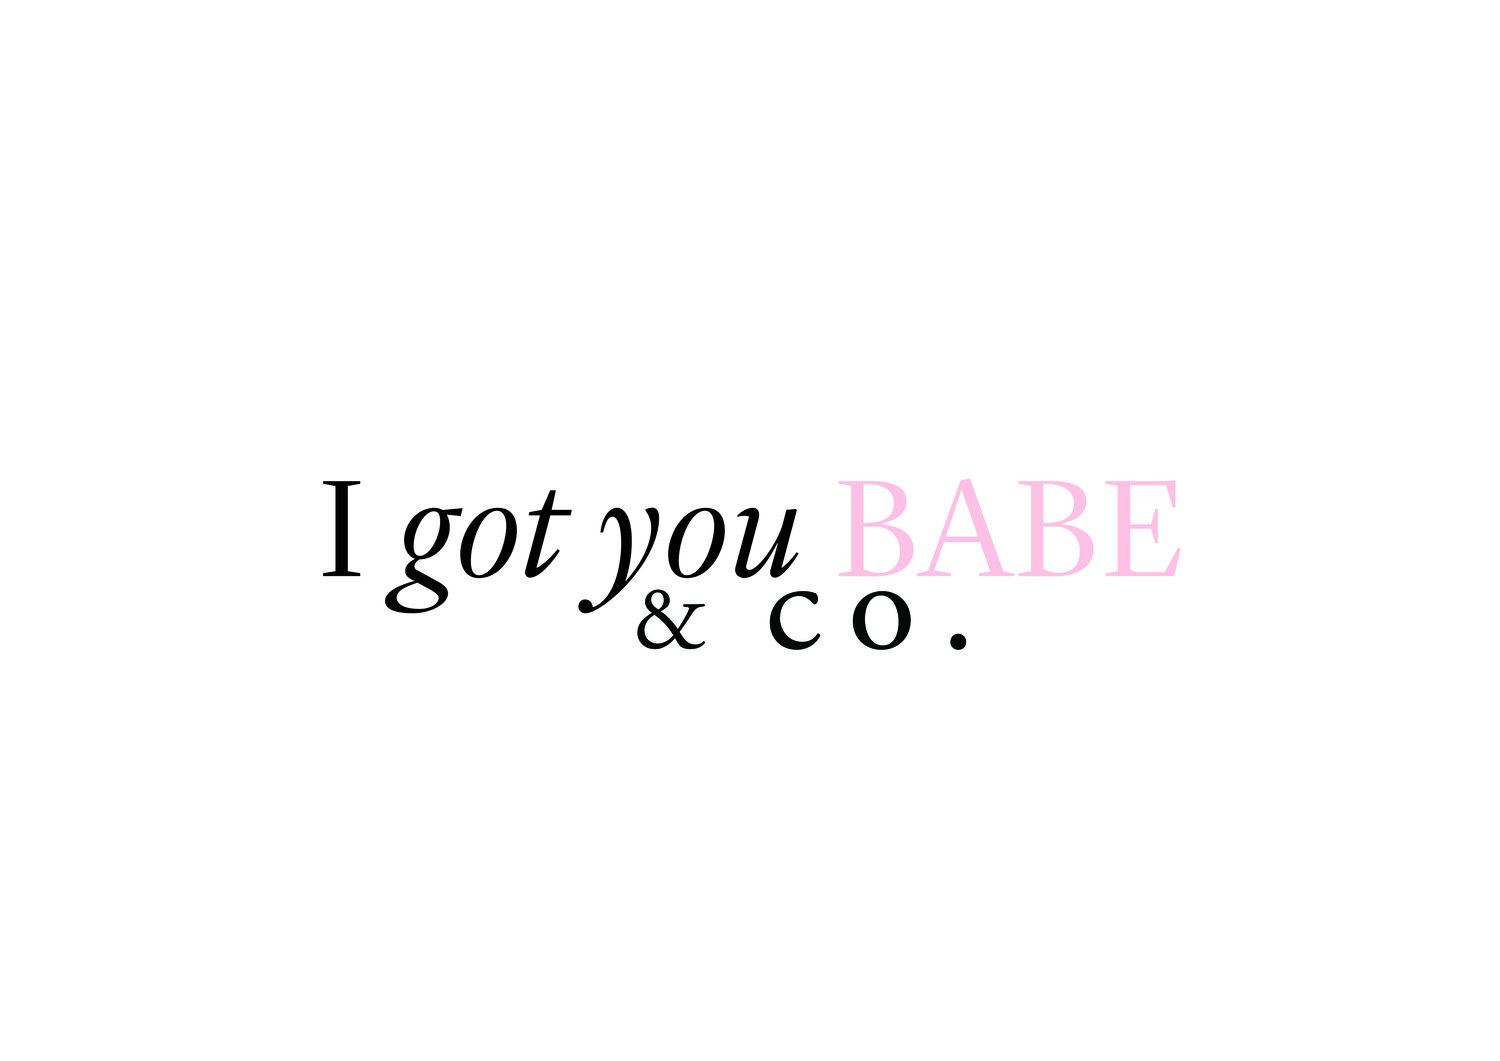 I GOT YOU BABE & CO / Melbourne Wedding Photographers